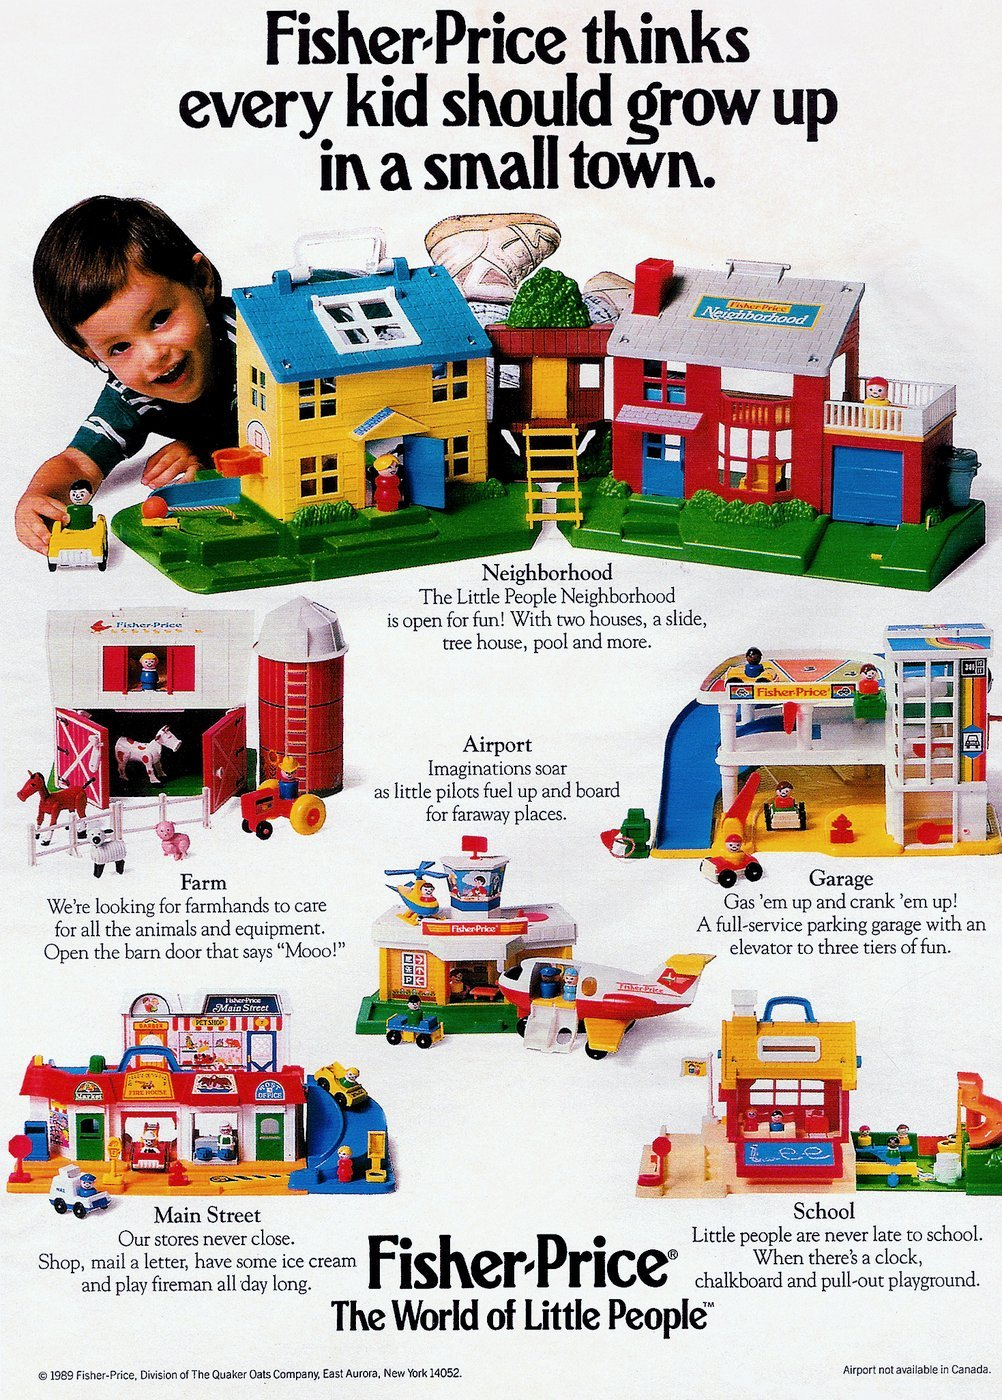 Fisher-Price Little People Every kid should grow up in a small town (1989)